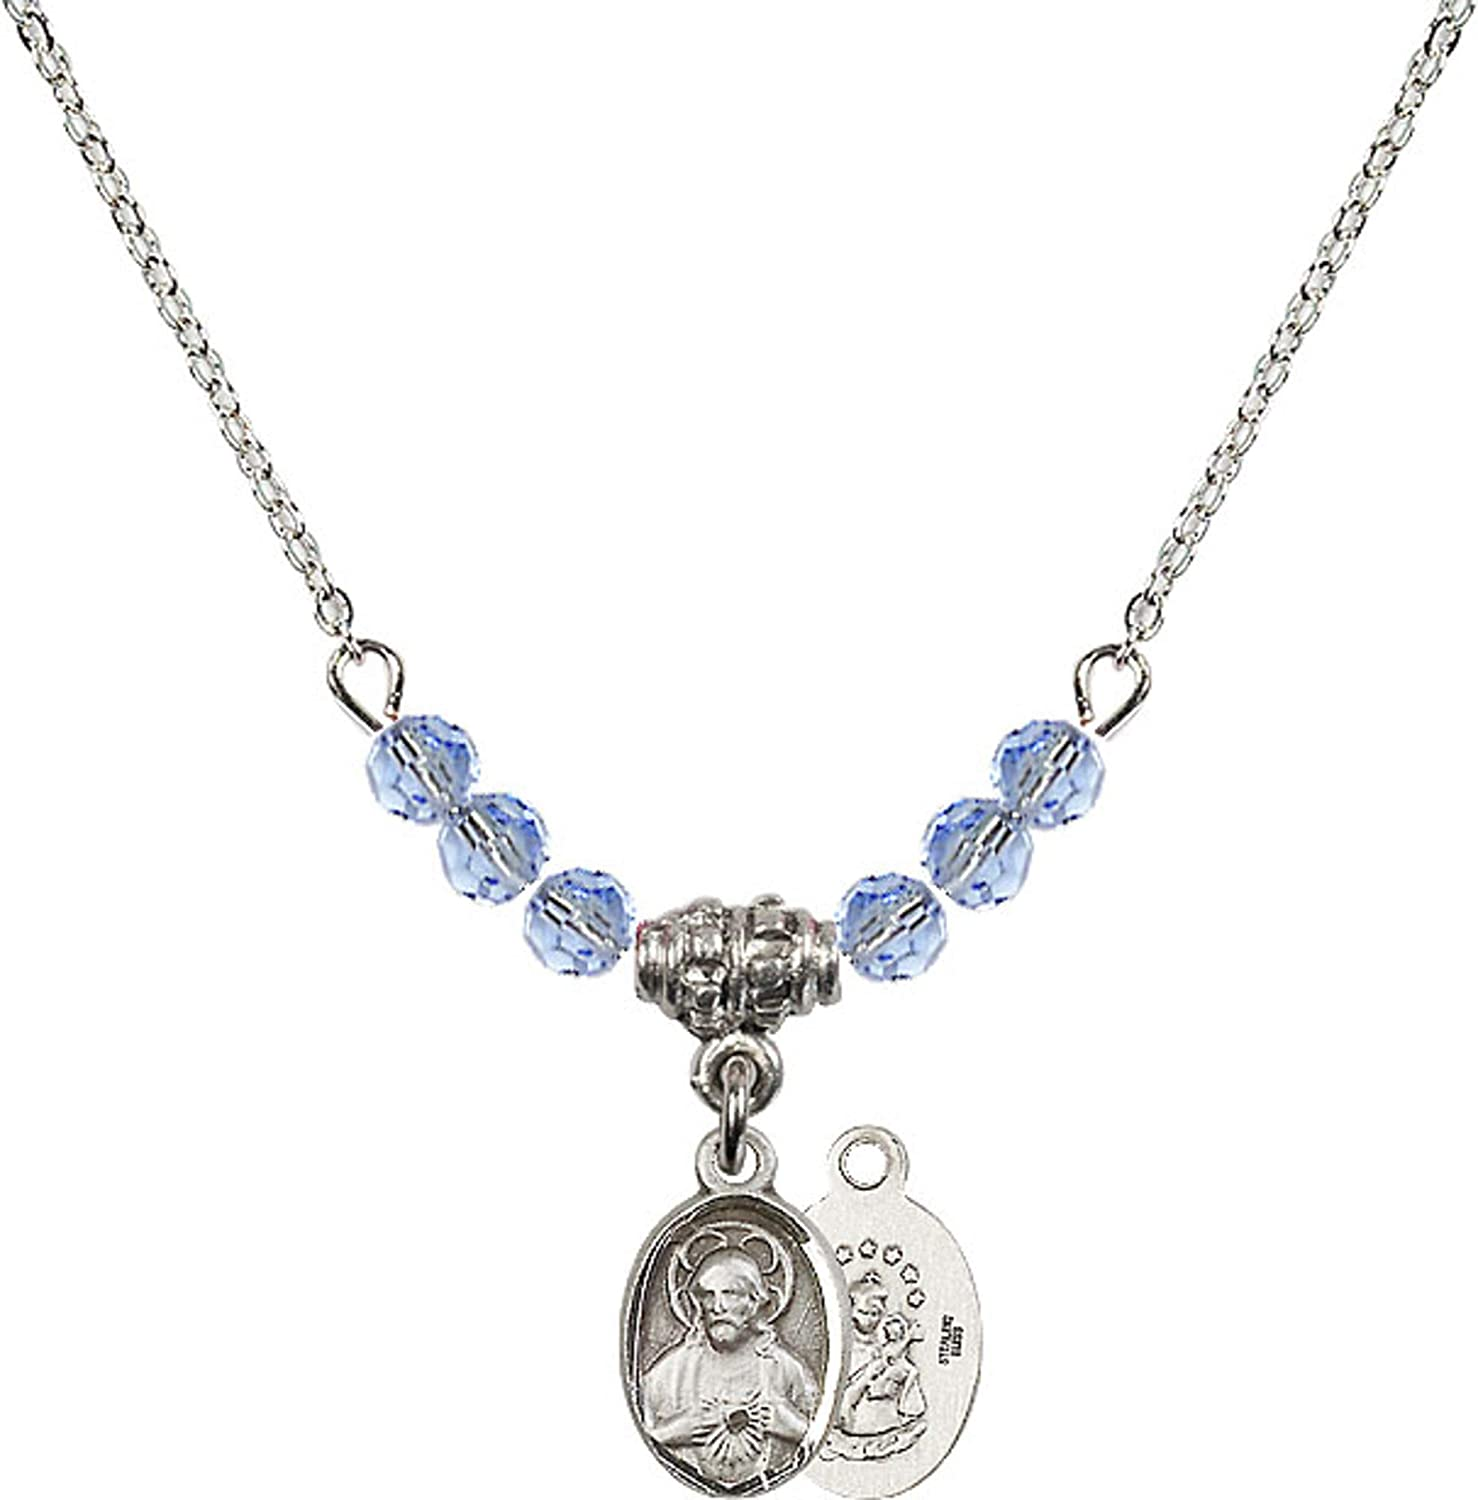 Bonyak Jewelry 18 Inch Rhodium Plated Necklace w// 4mm Light Blue September Birth Month Stone Beads and Scapular Charm